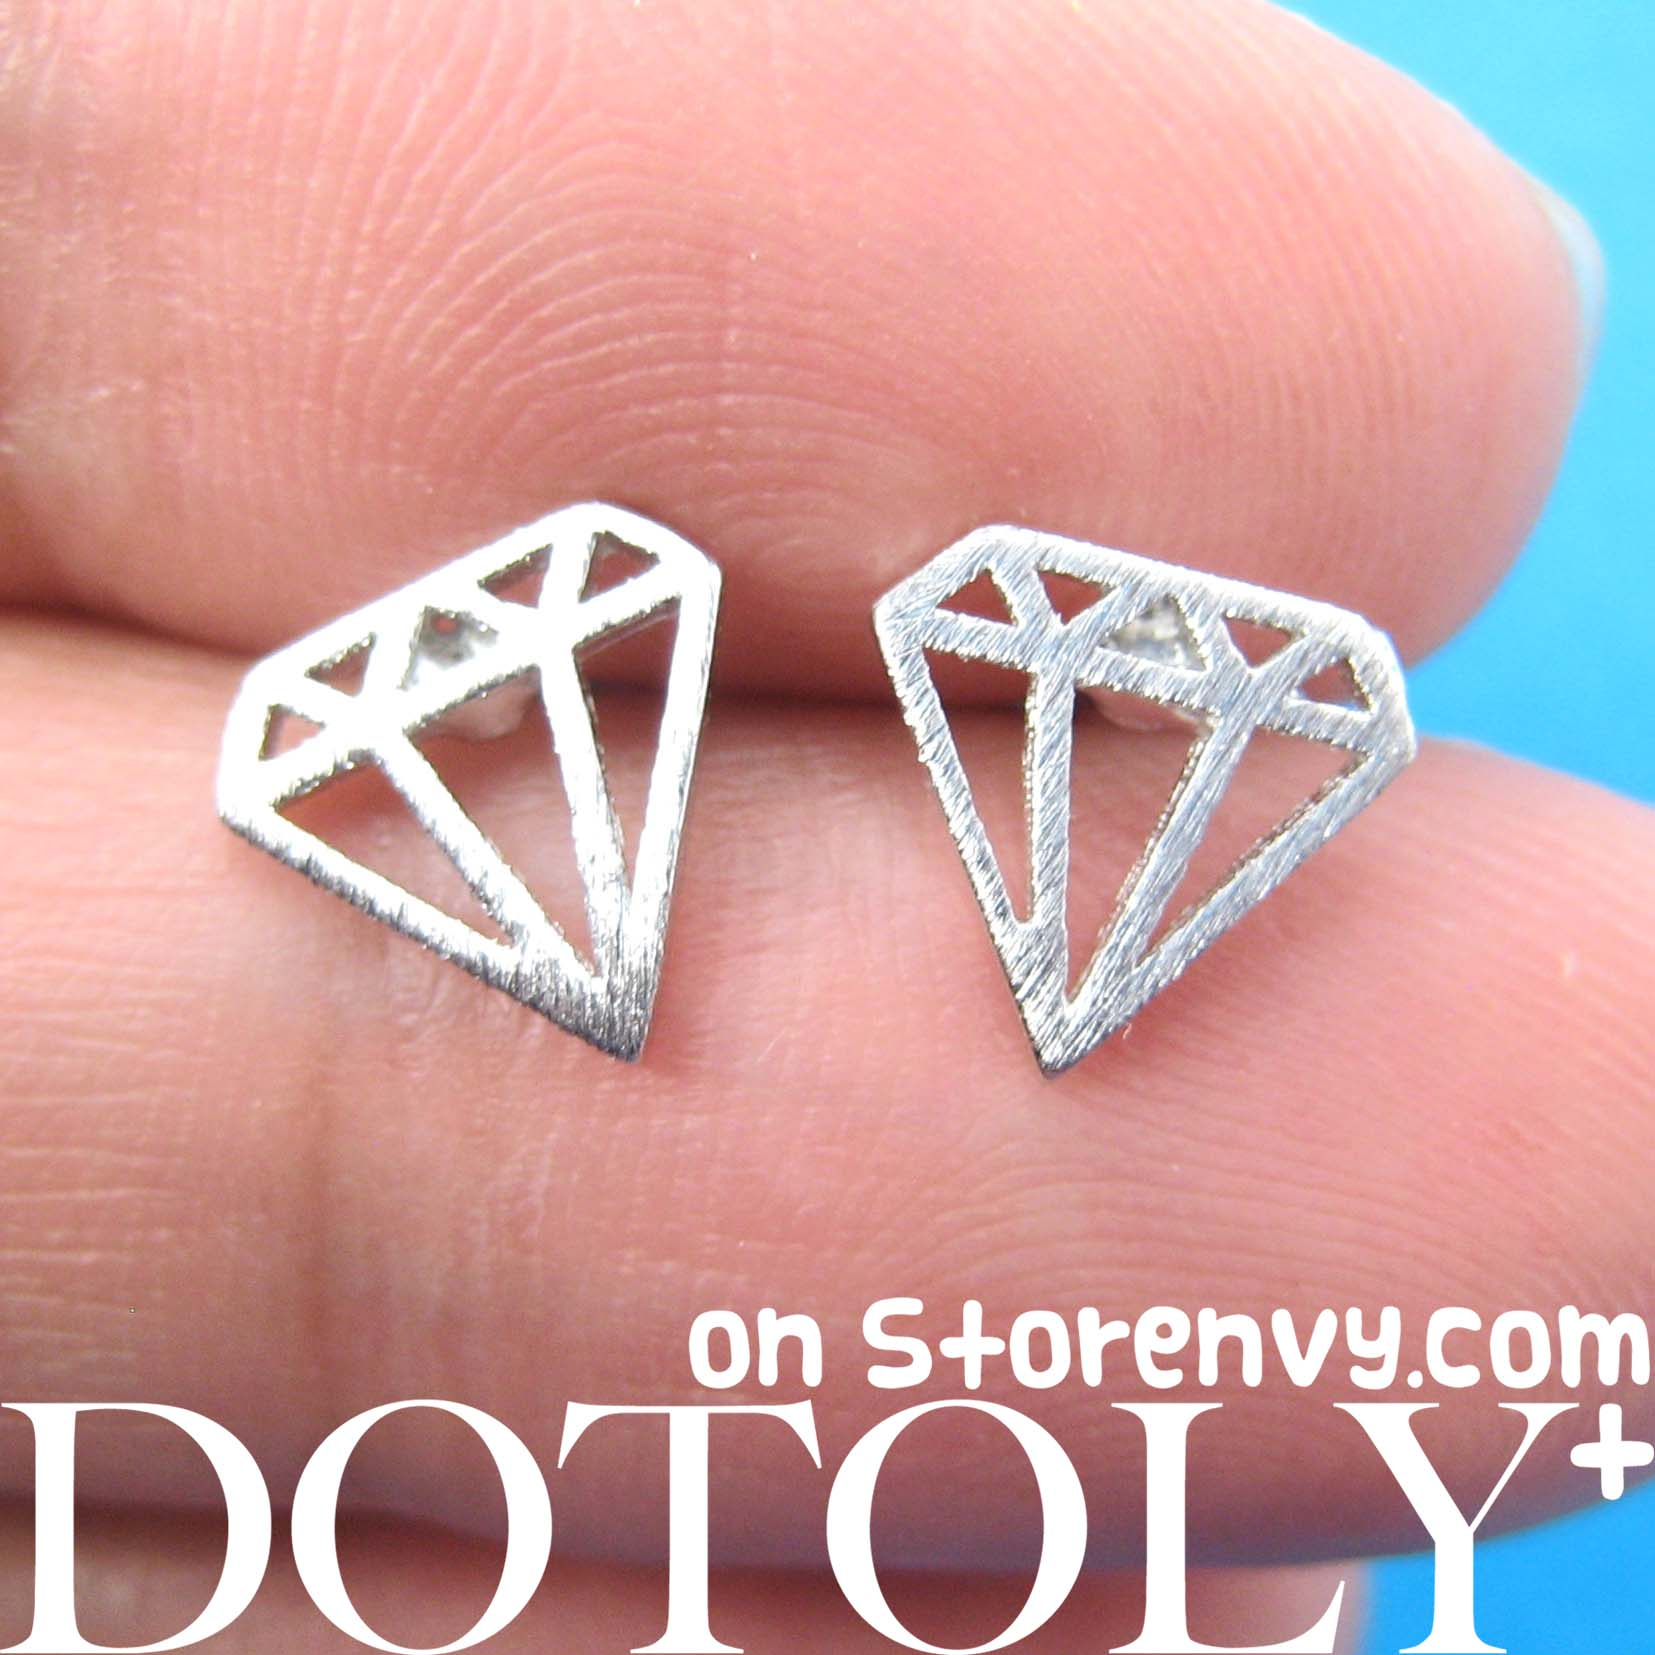 online s exquisite women shaped pretty stud earrings jewelry buy diamond category